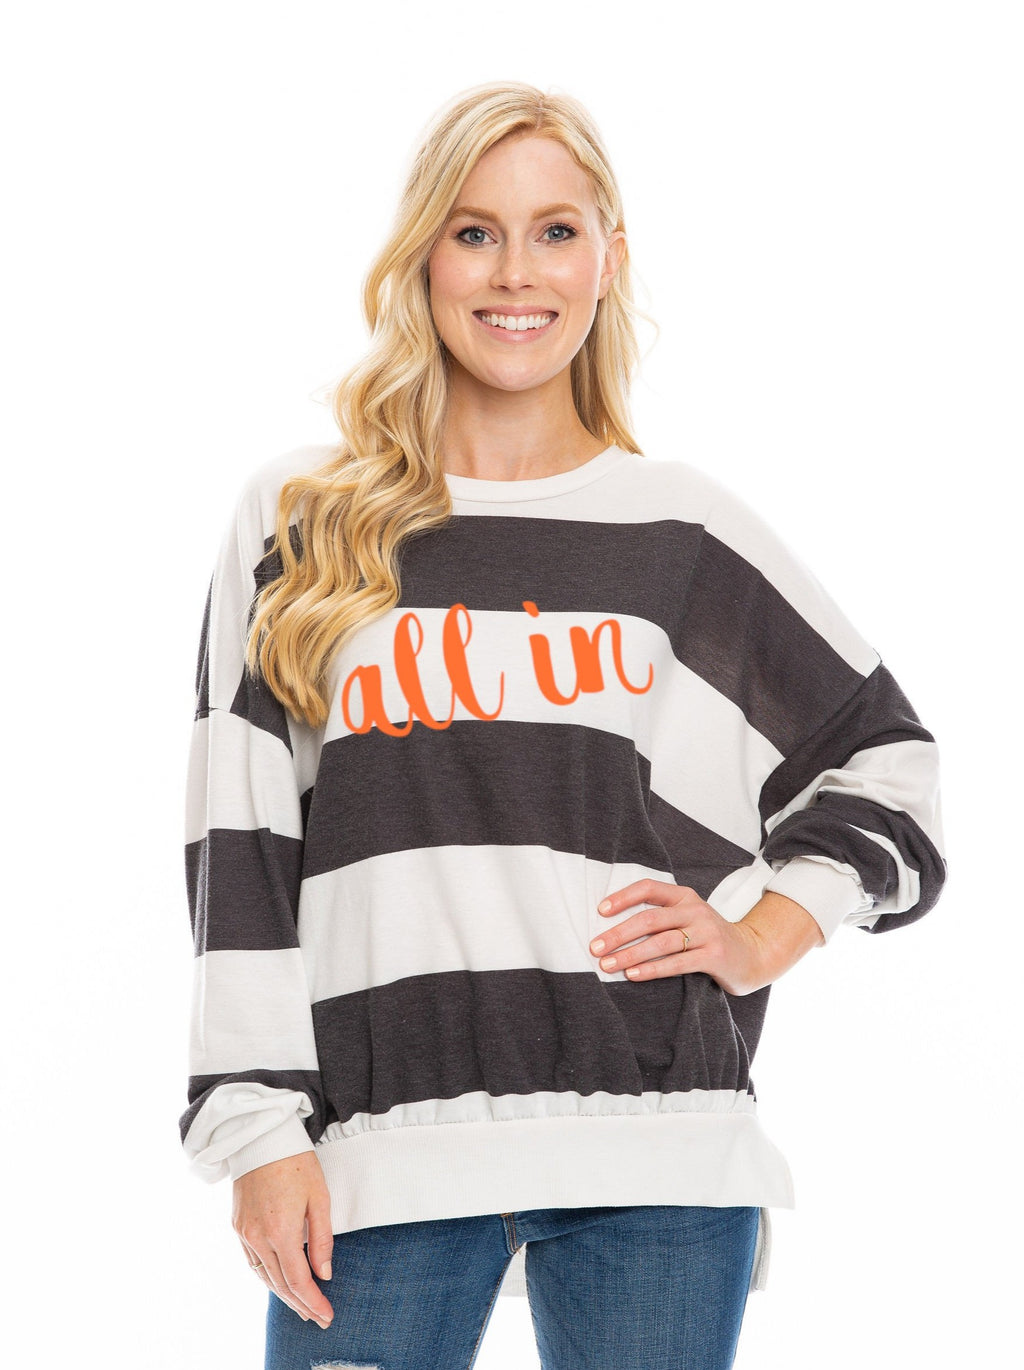 The All In Oversized Long Sleeve